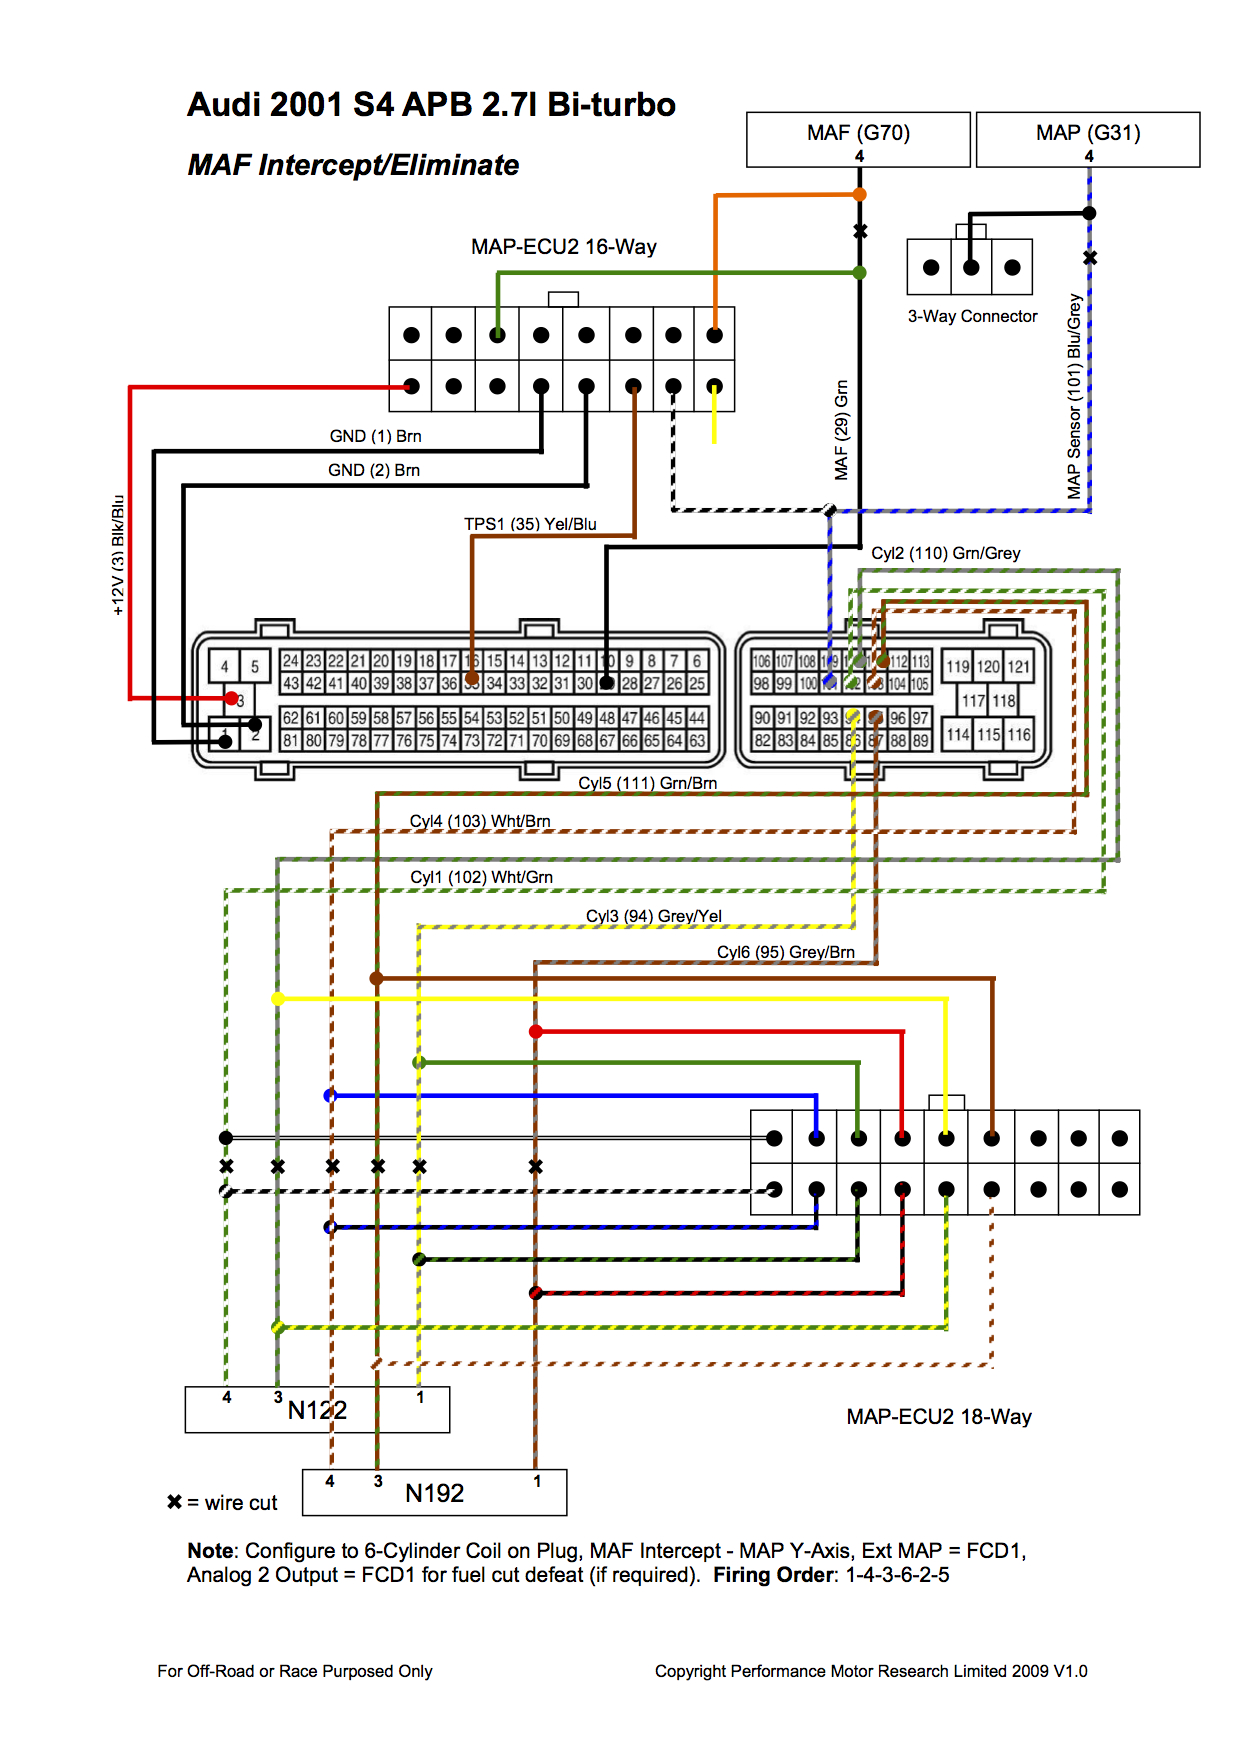 Audi S4 20011 300zx wiring diagram 300zx engine wiring diagram \u2022 wiring diagrams 2005 toyota camry stereo wiring diagram at gsmx.co